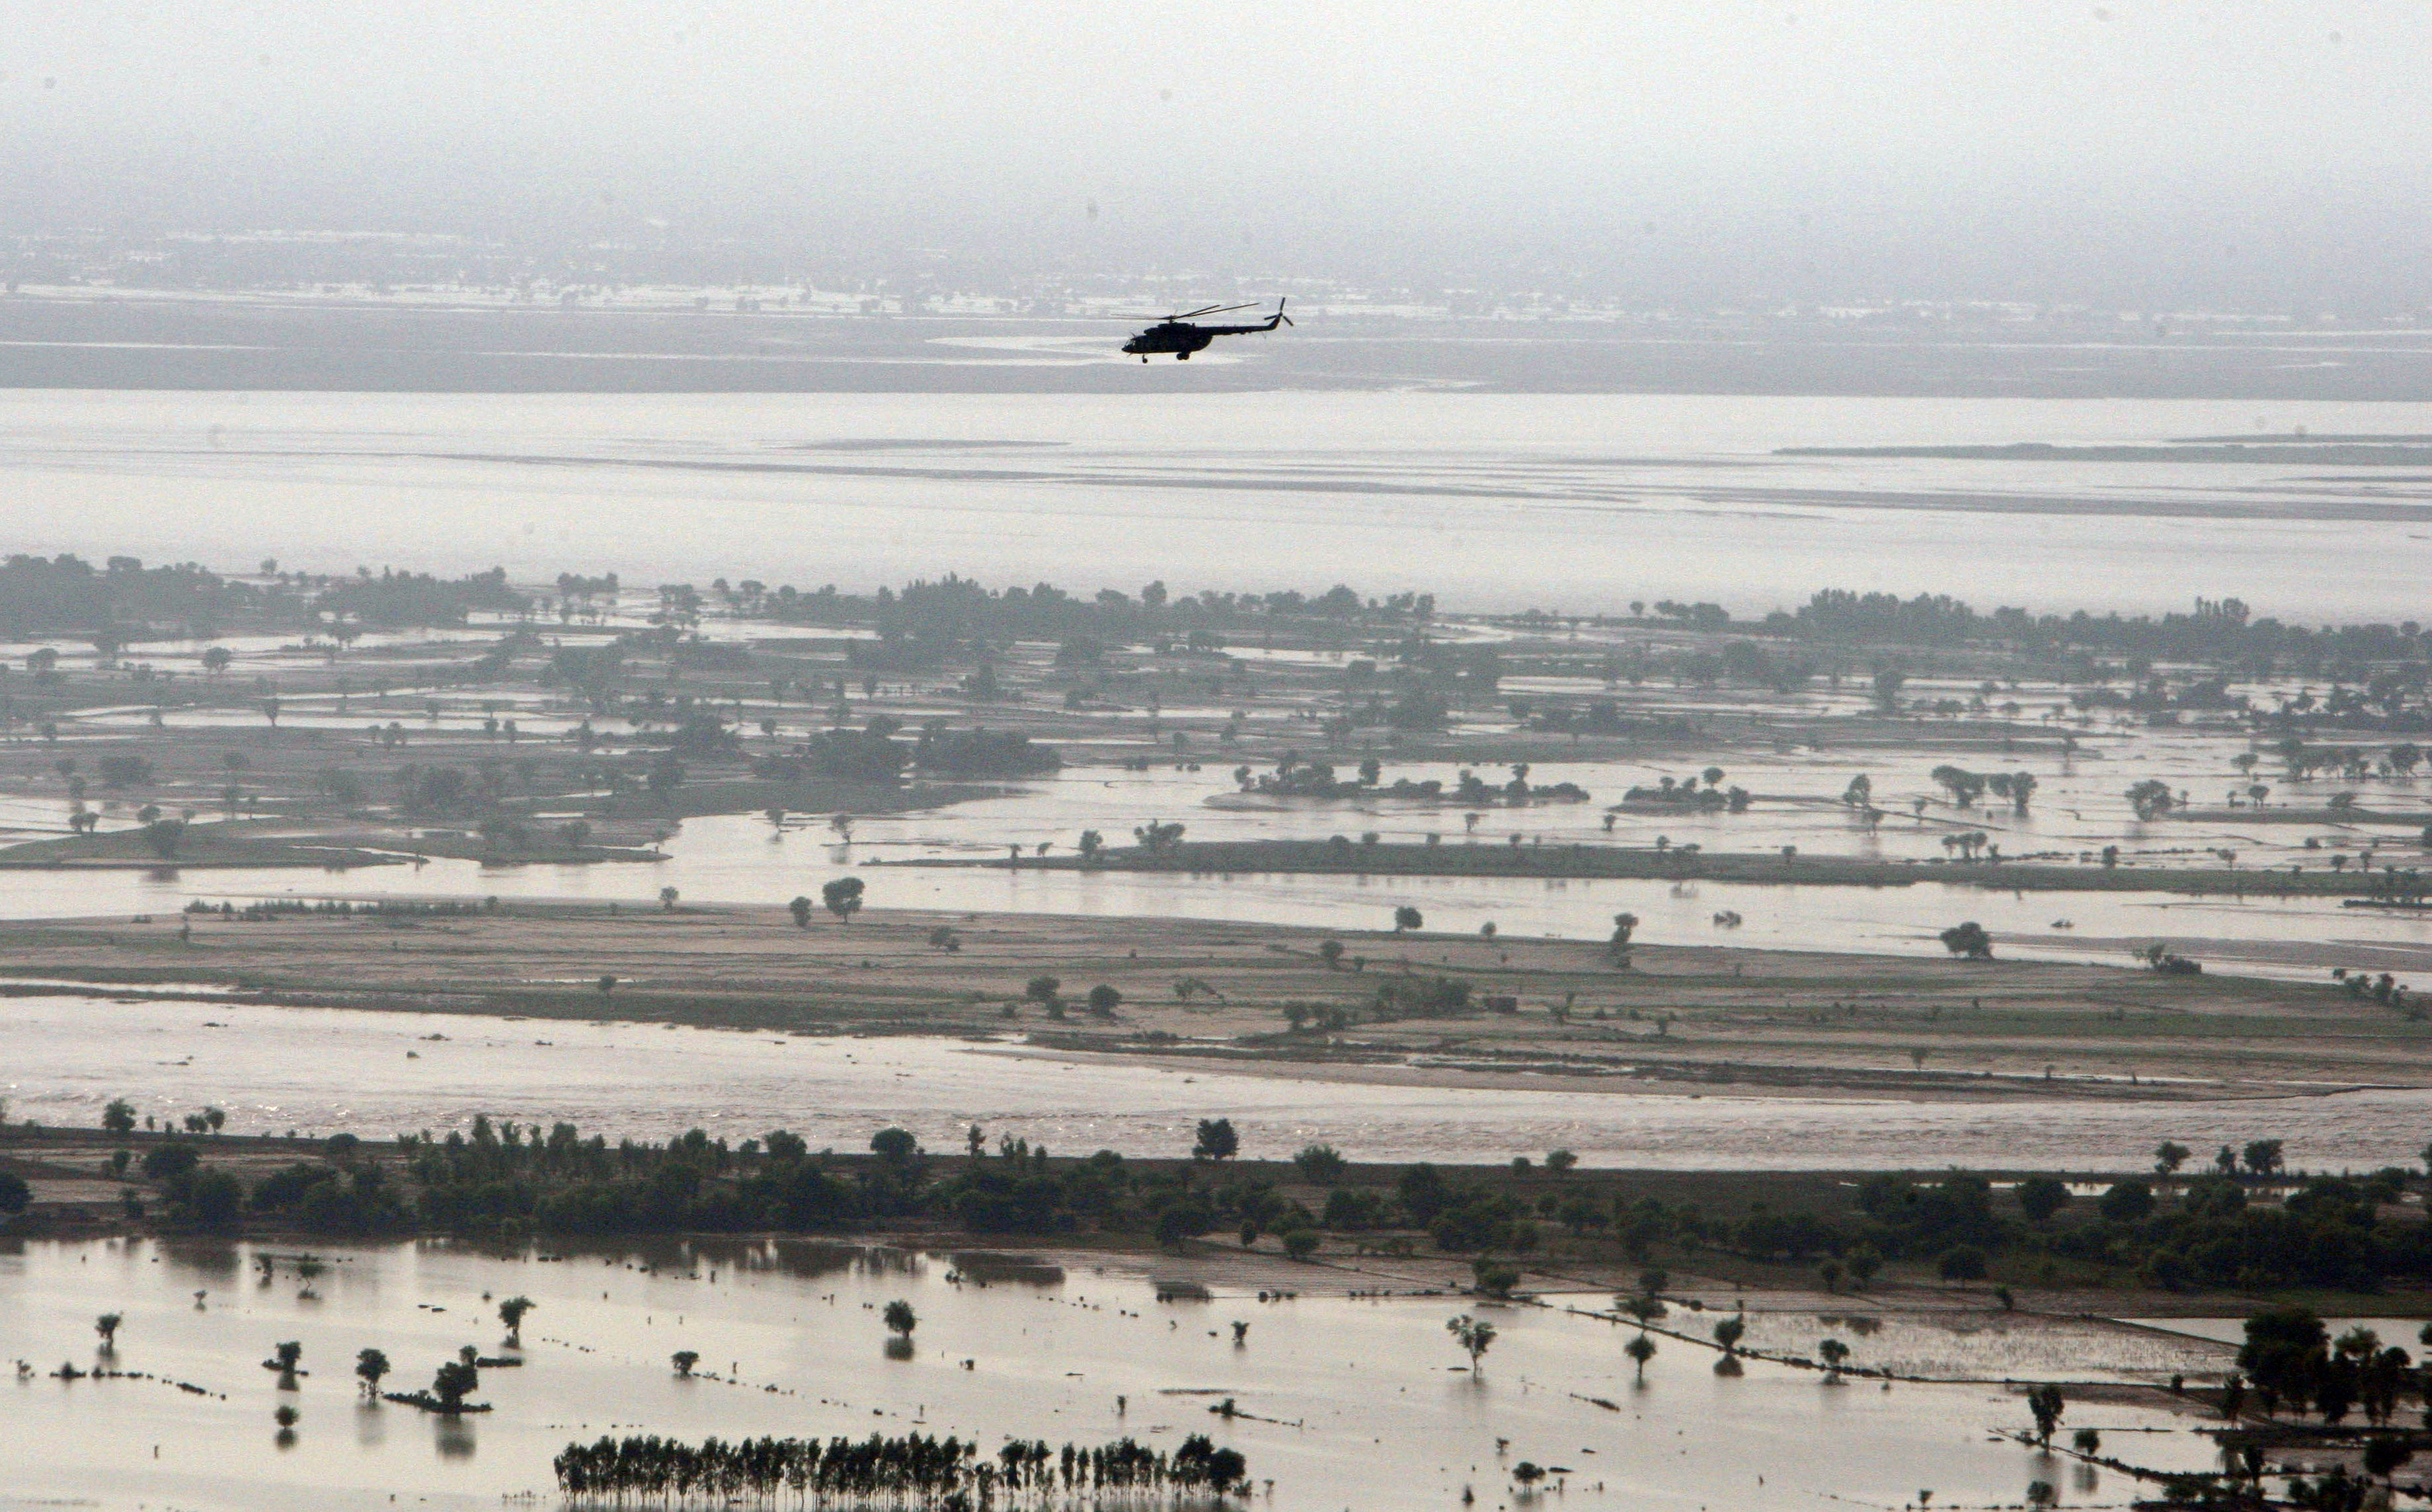 SG's helicopter flying over the flood waters in the Province of Punjab, near the city of Multan.